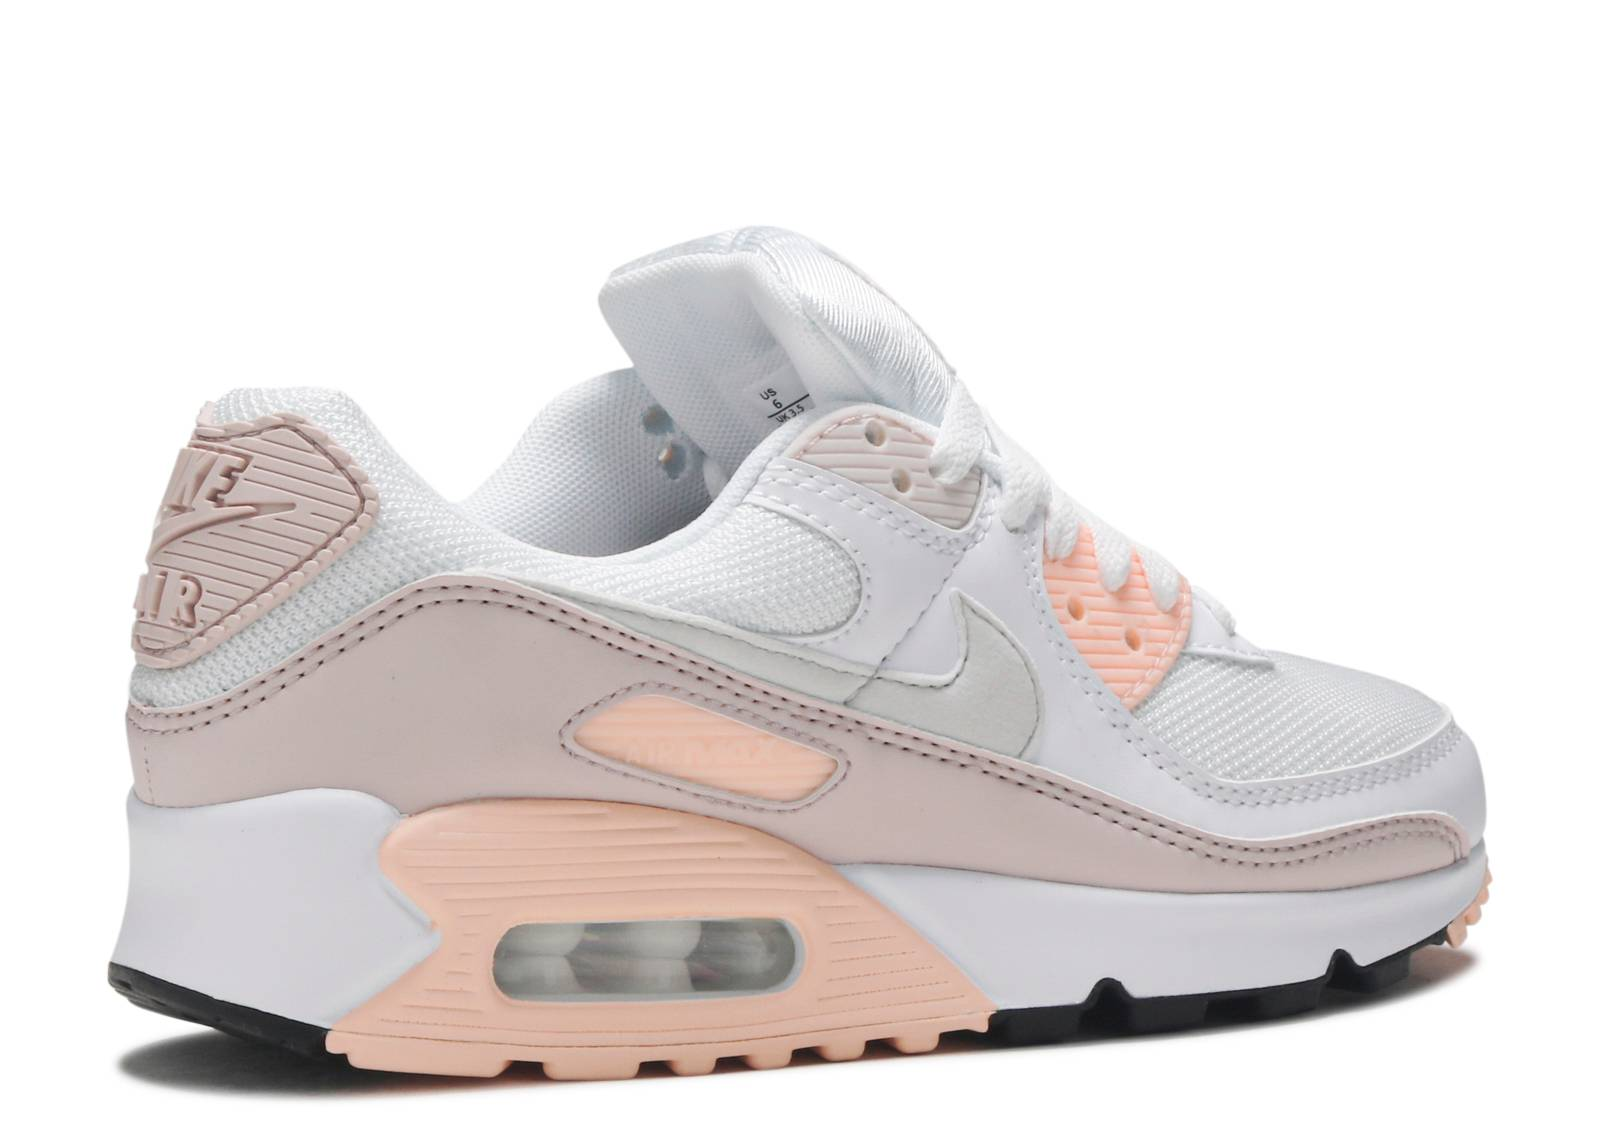 Wmns Air Max 90 'Barely Rose' - Nike - CT1030 101 - white/platinum ...